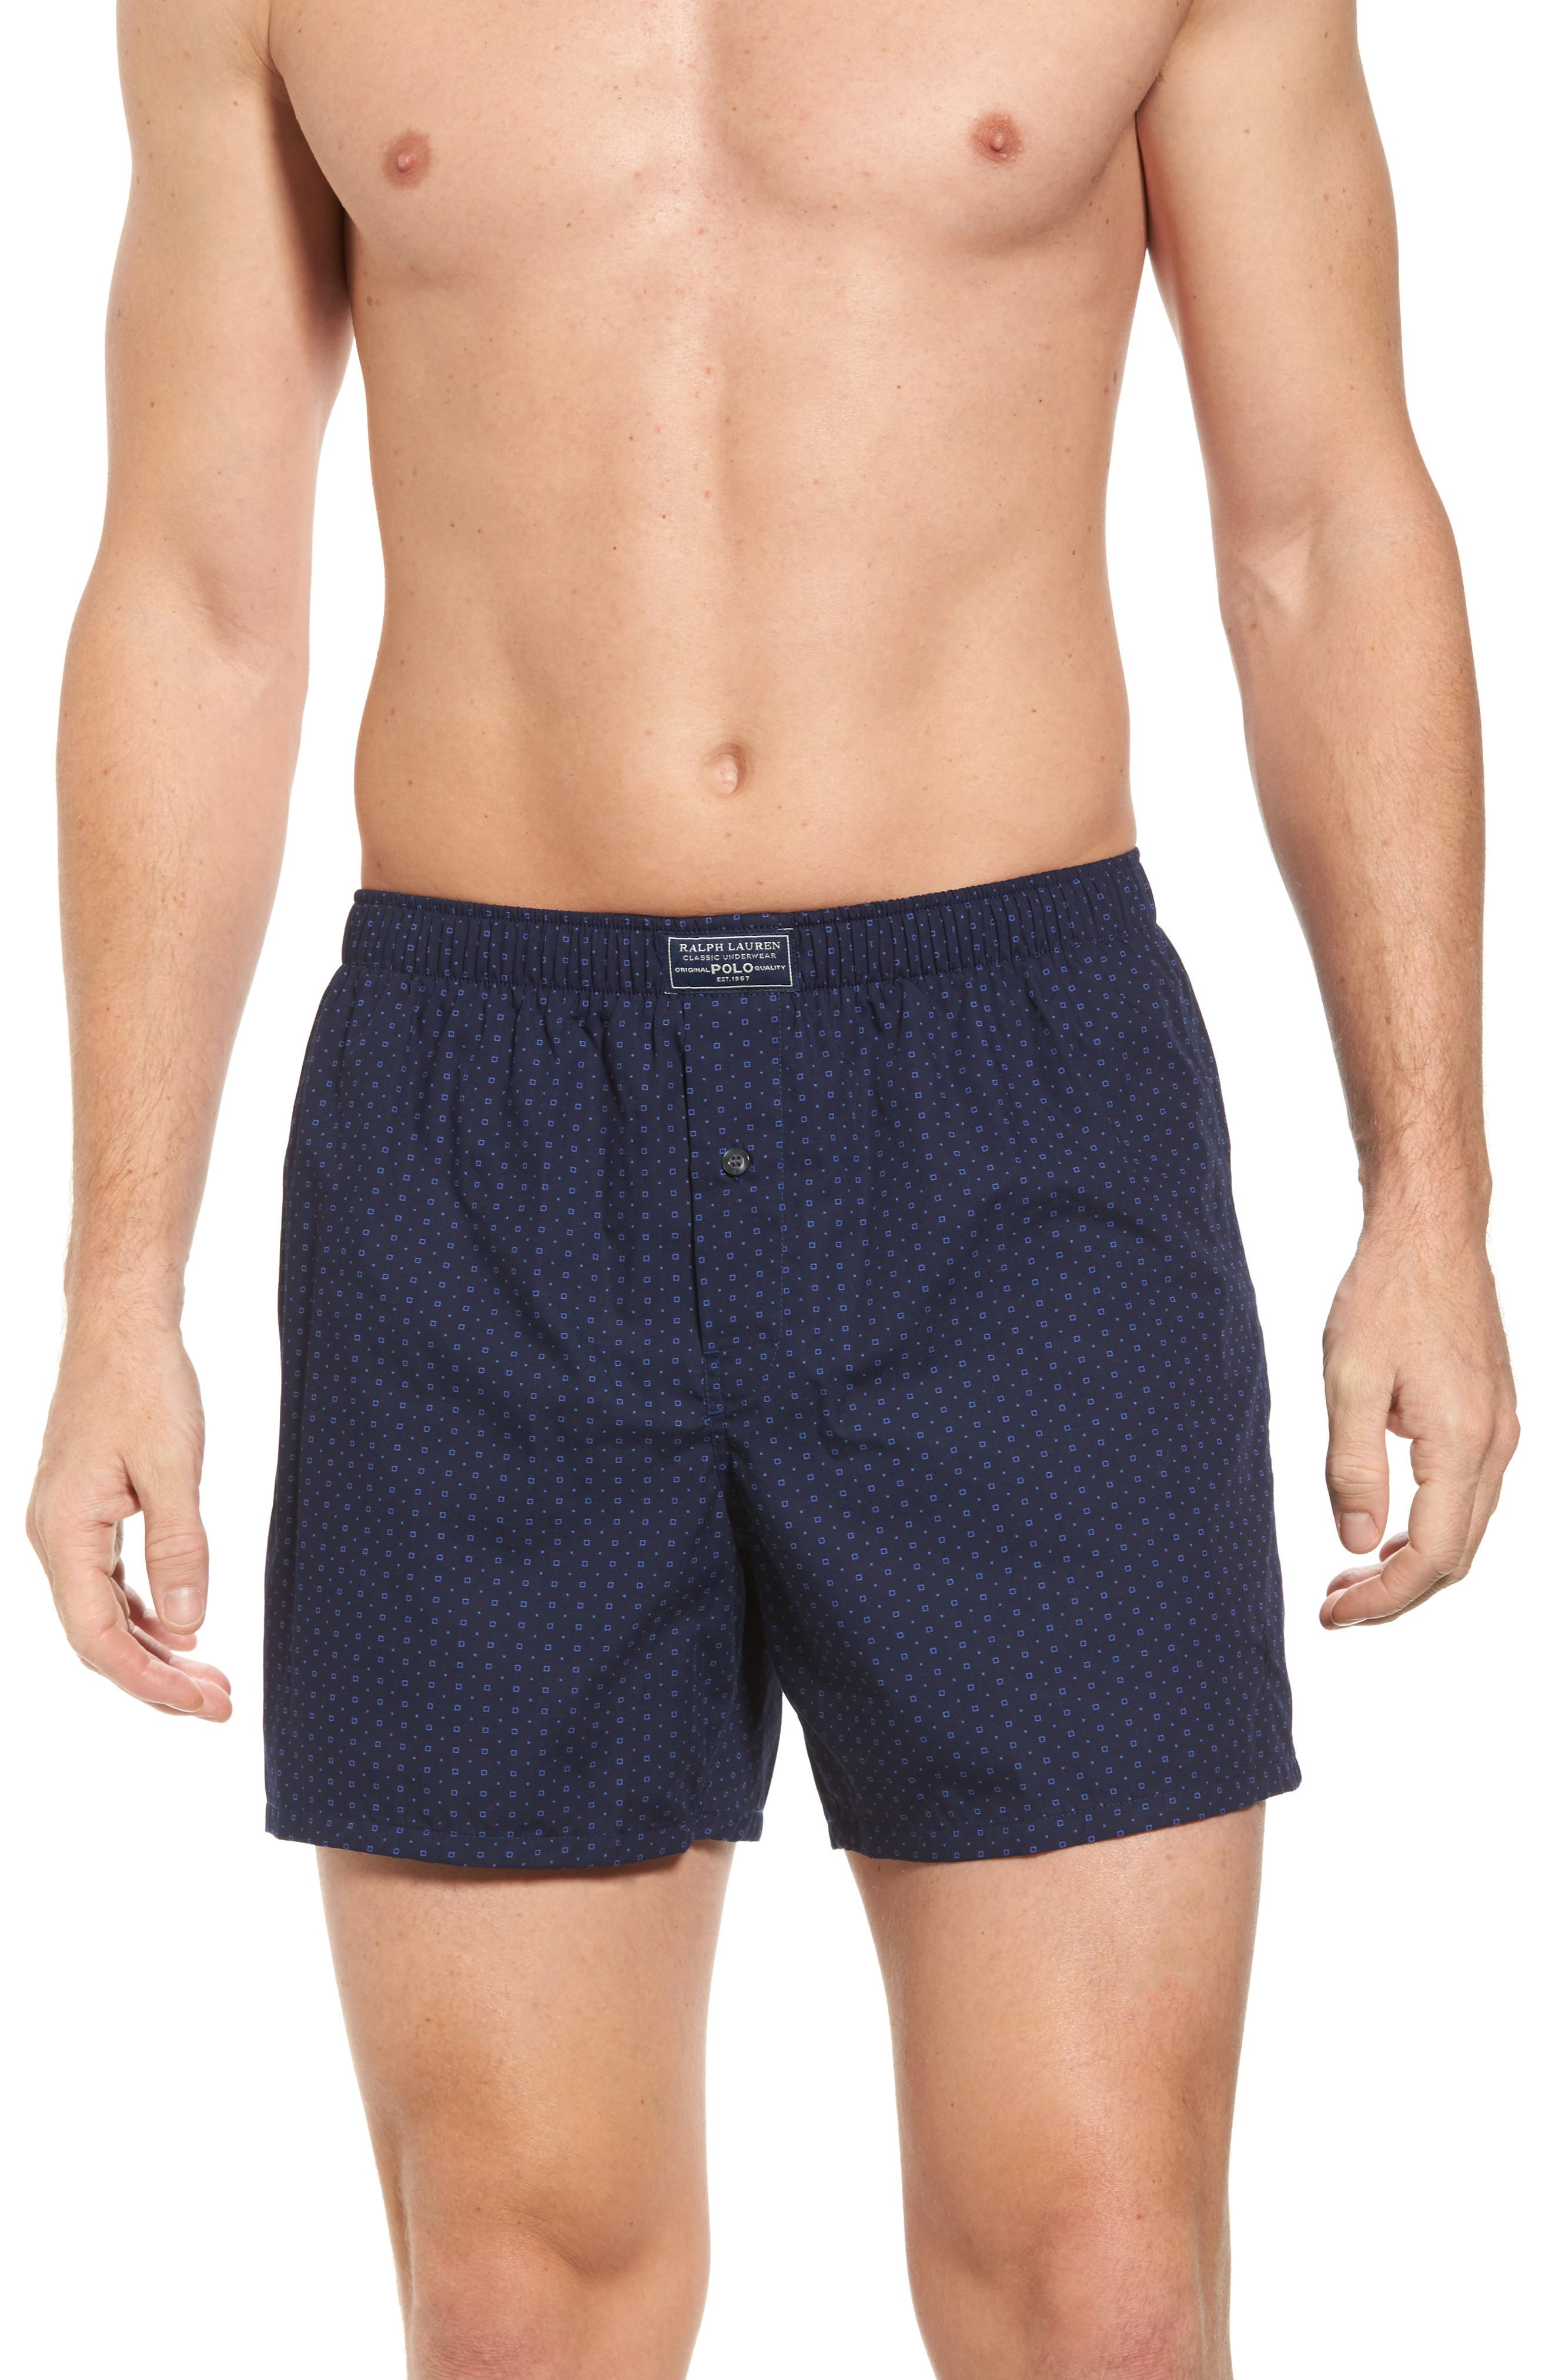 Alternate Image 1 Selected - Polo Ralph Lauren Classic Cotton Boxers